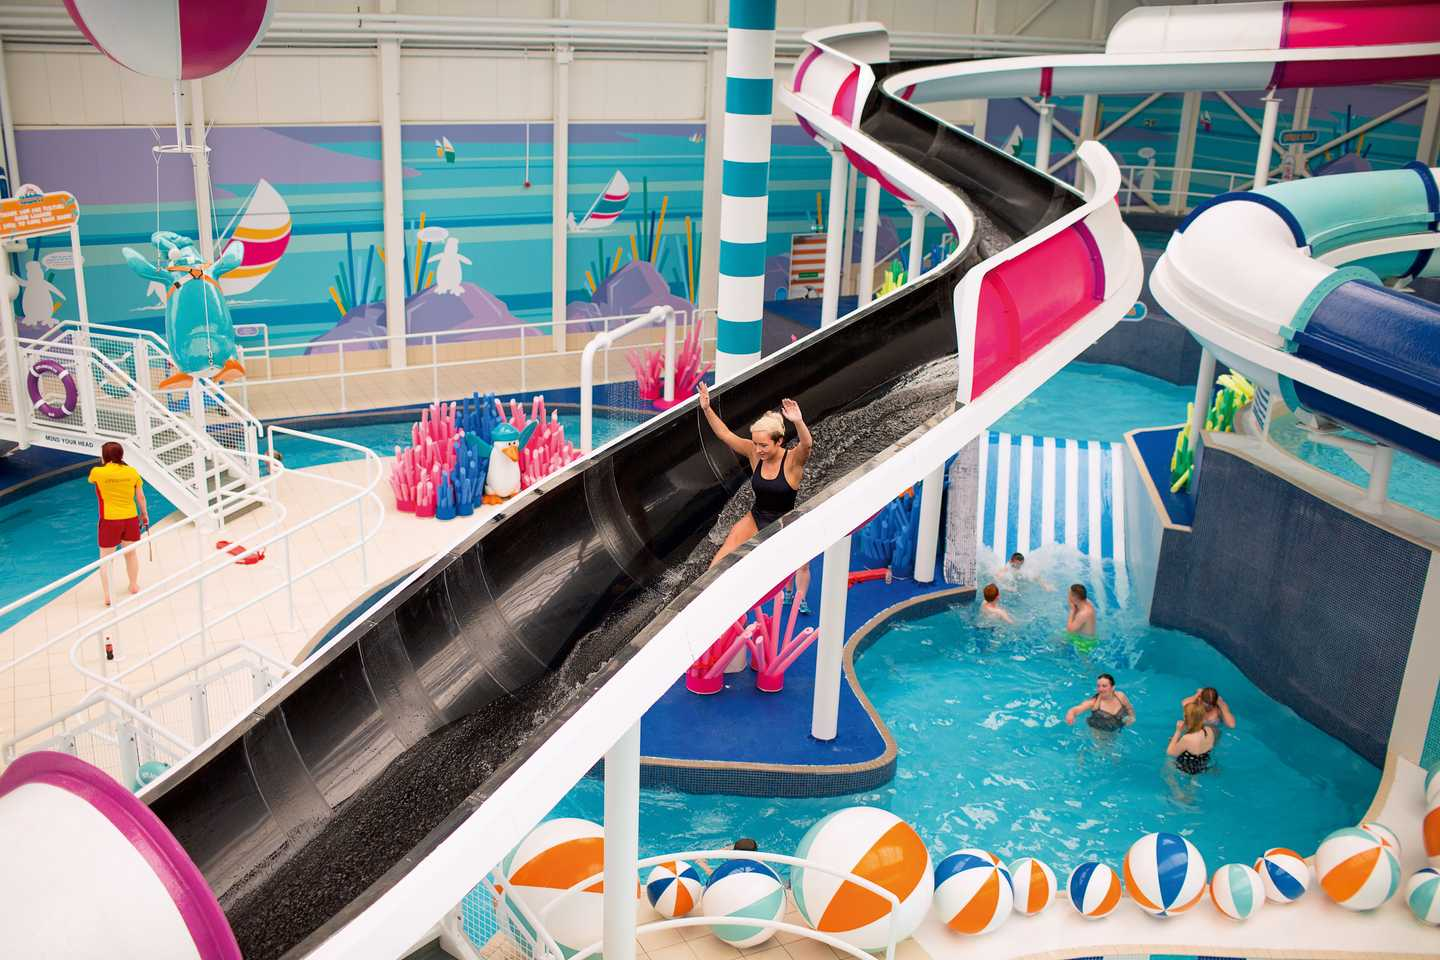 Guest sliding down the indoor water flume